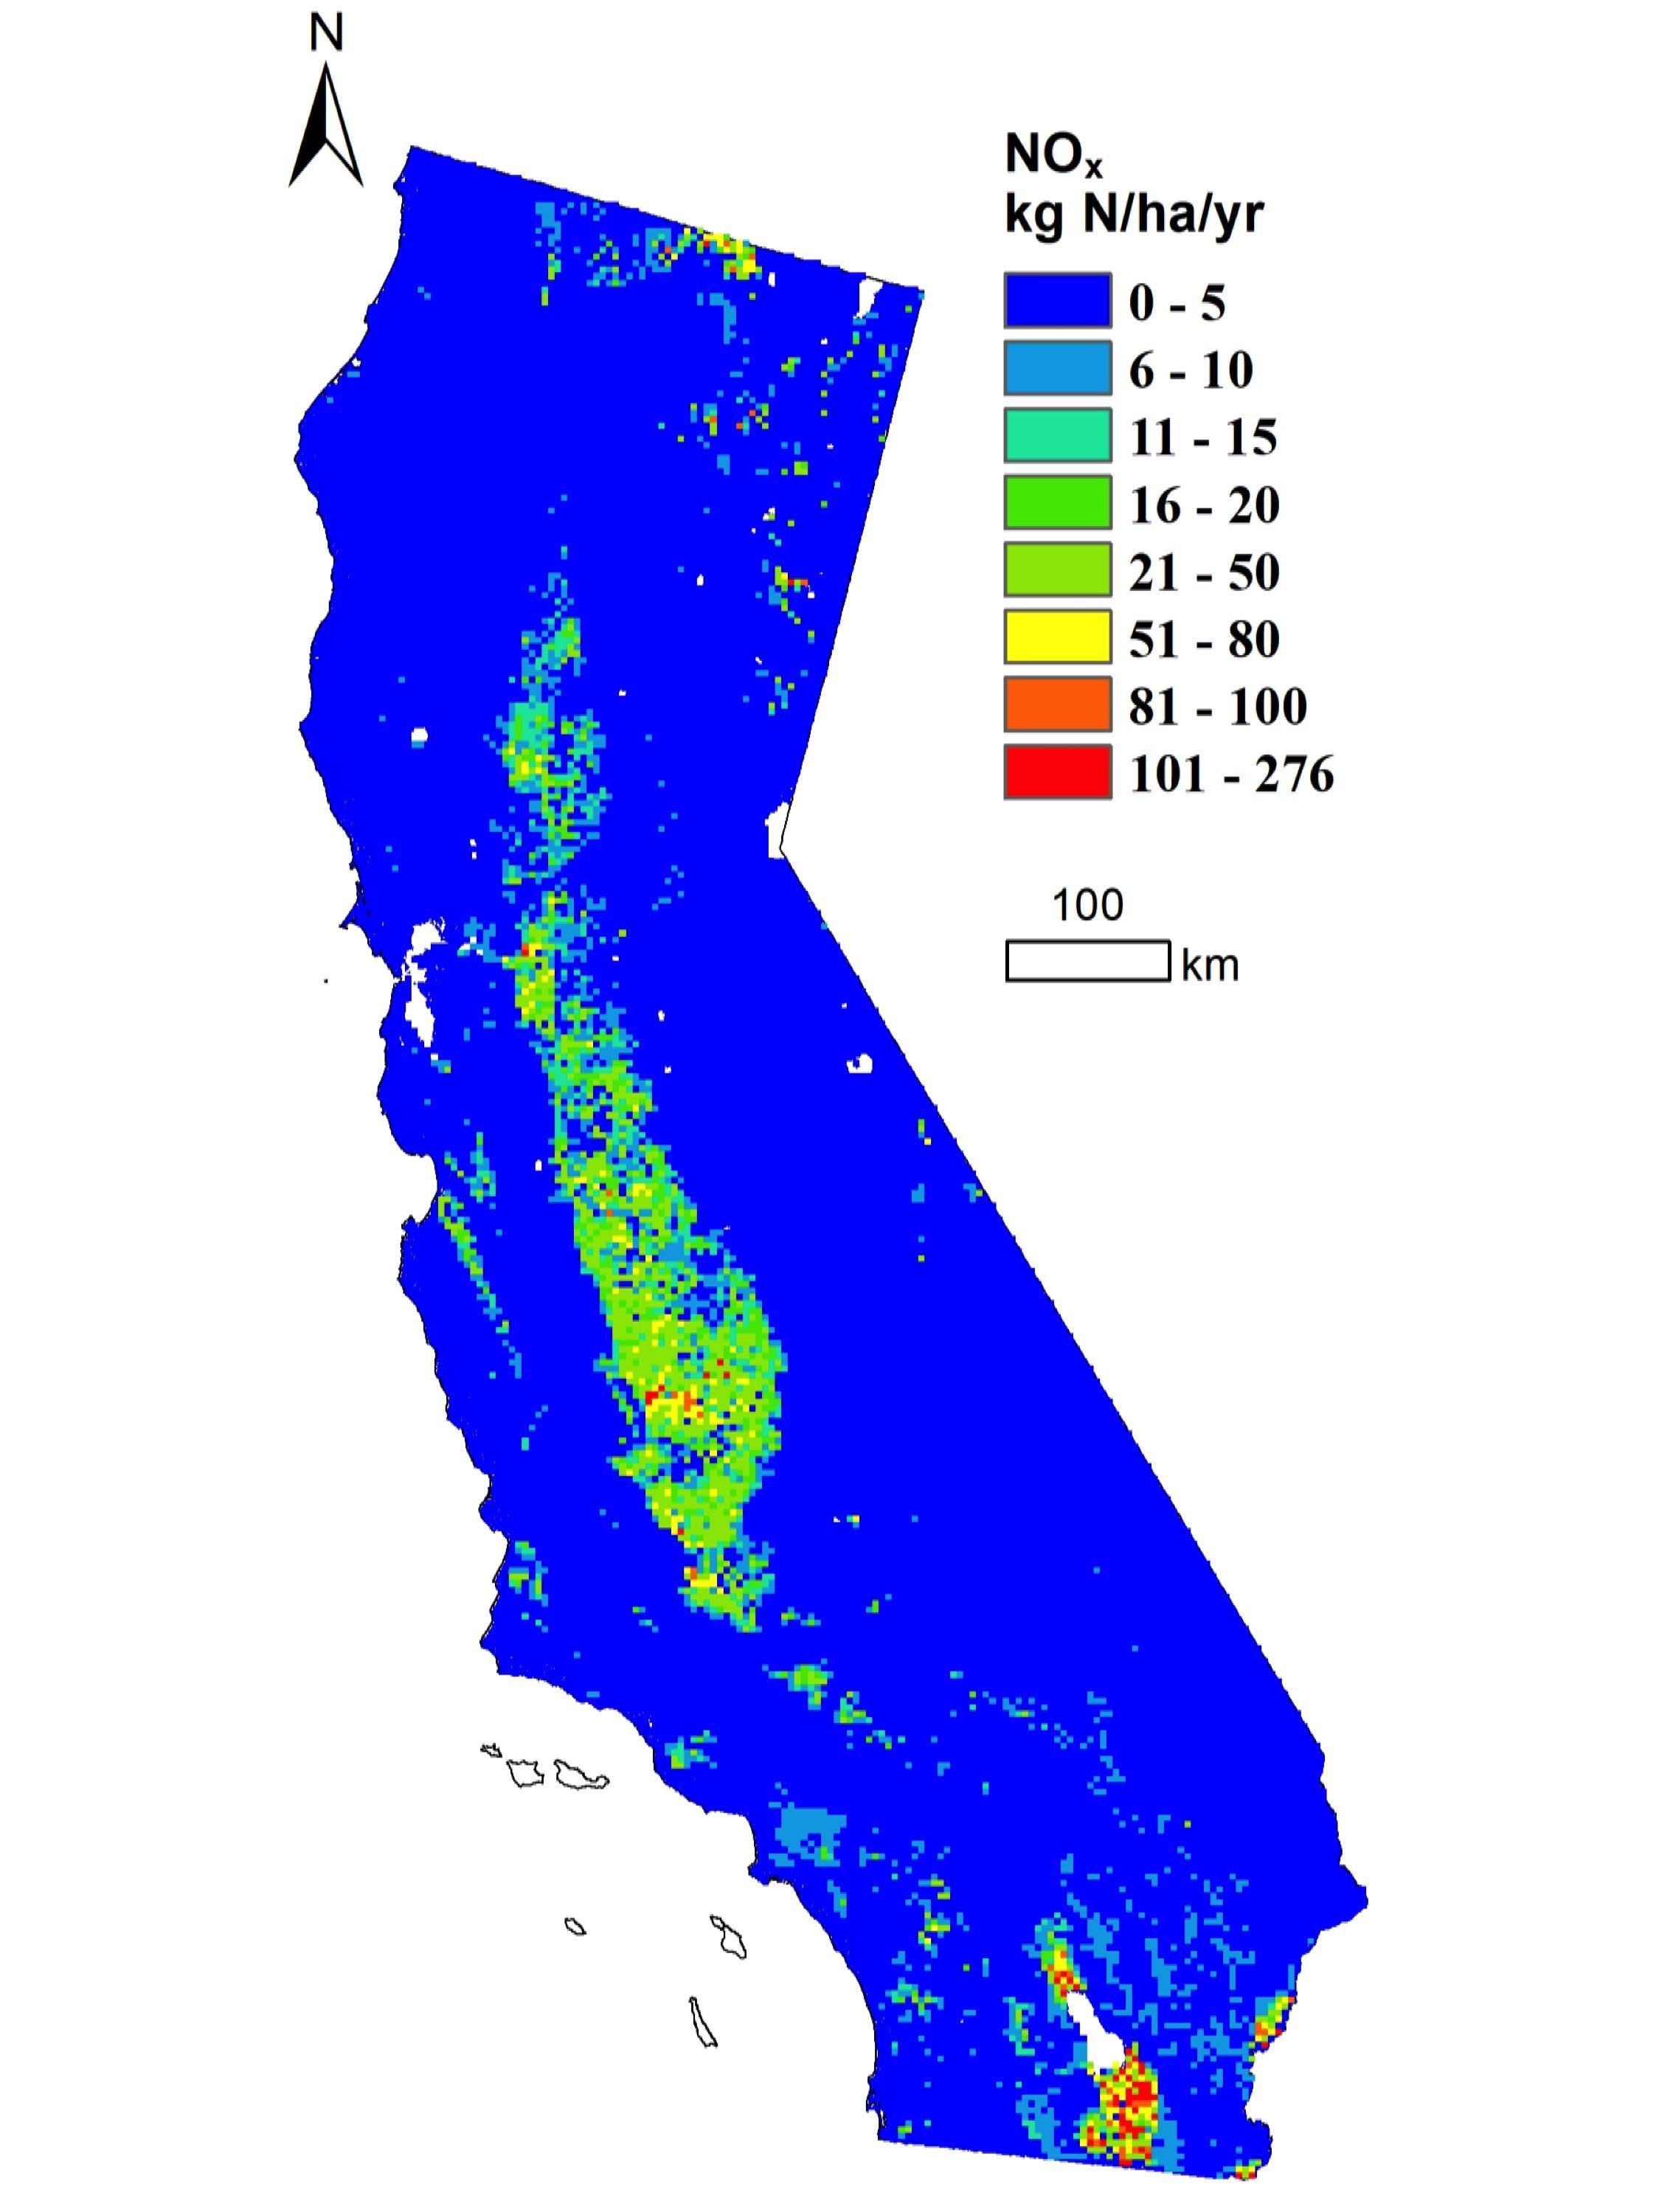 Uc Davis California Map.Central Valley Soil Emissions A Large Source Of State S Nitrogen